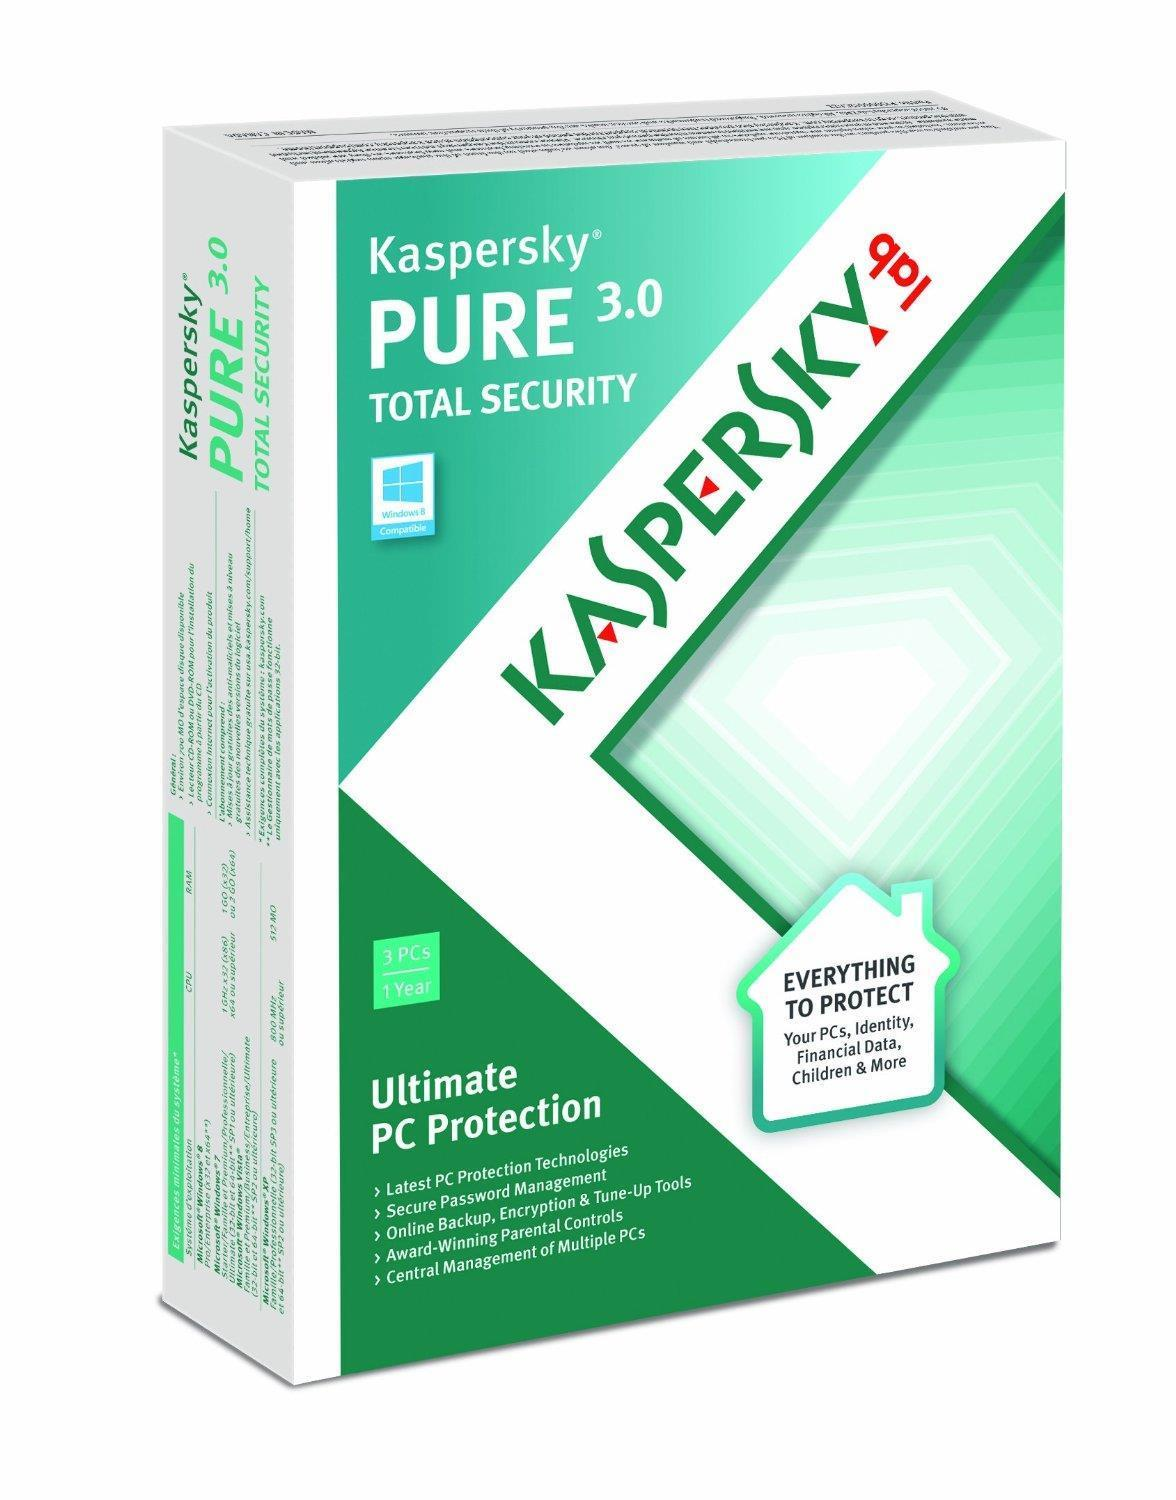 Kaspersky Pure 3.0 Total Security Internet Security Software 3 User 12 Months 1 Year DVD